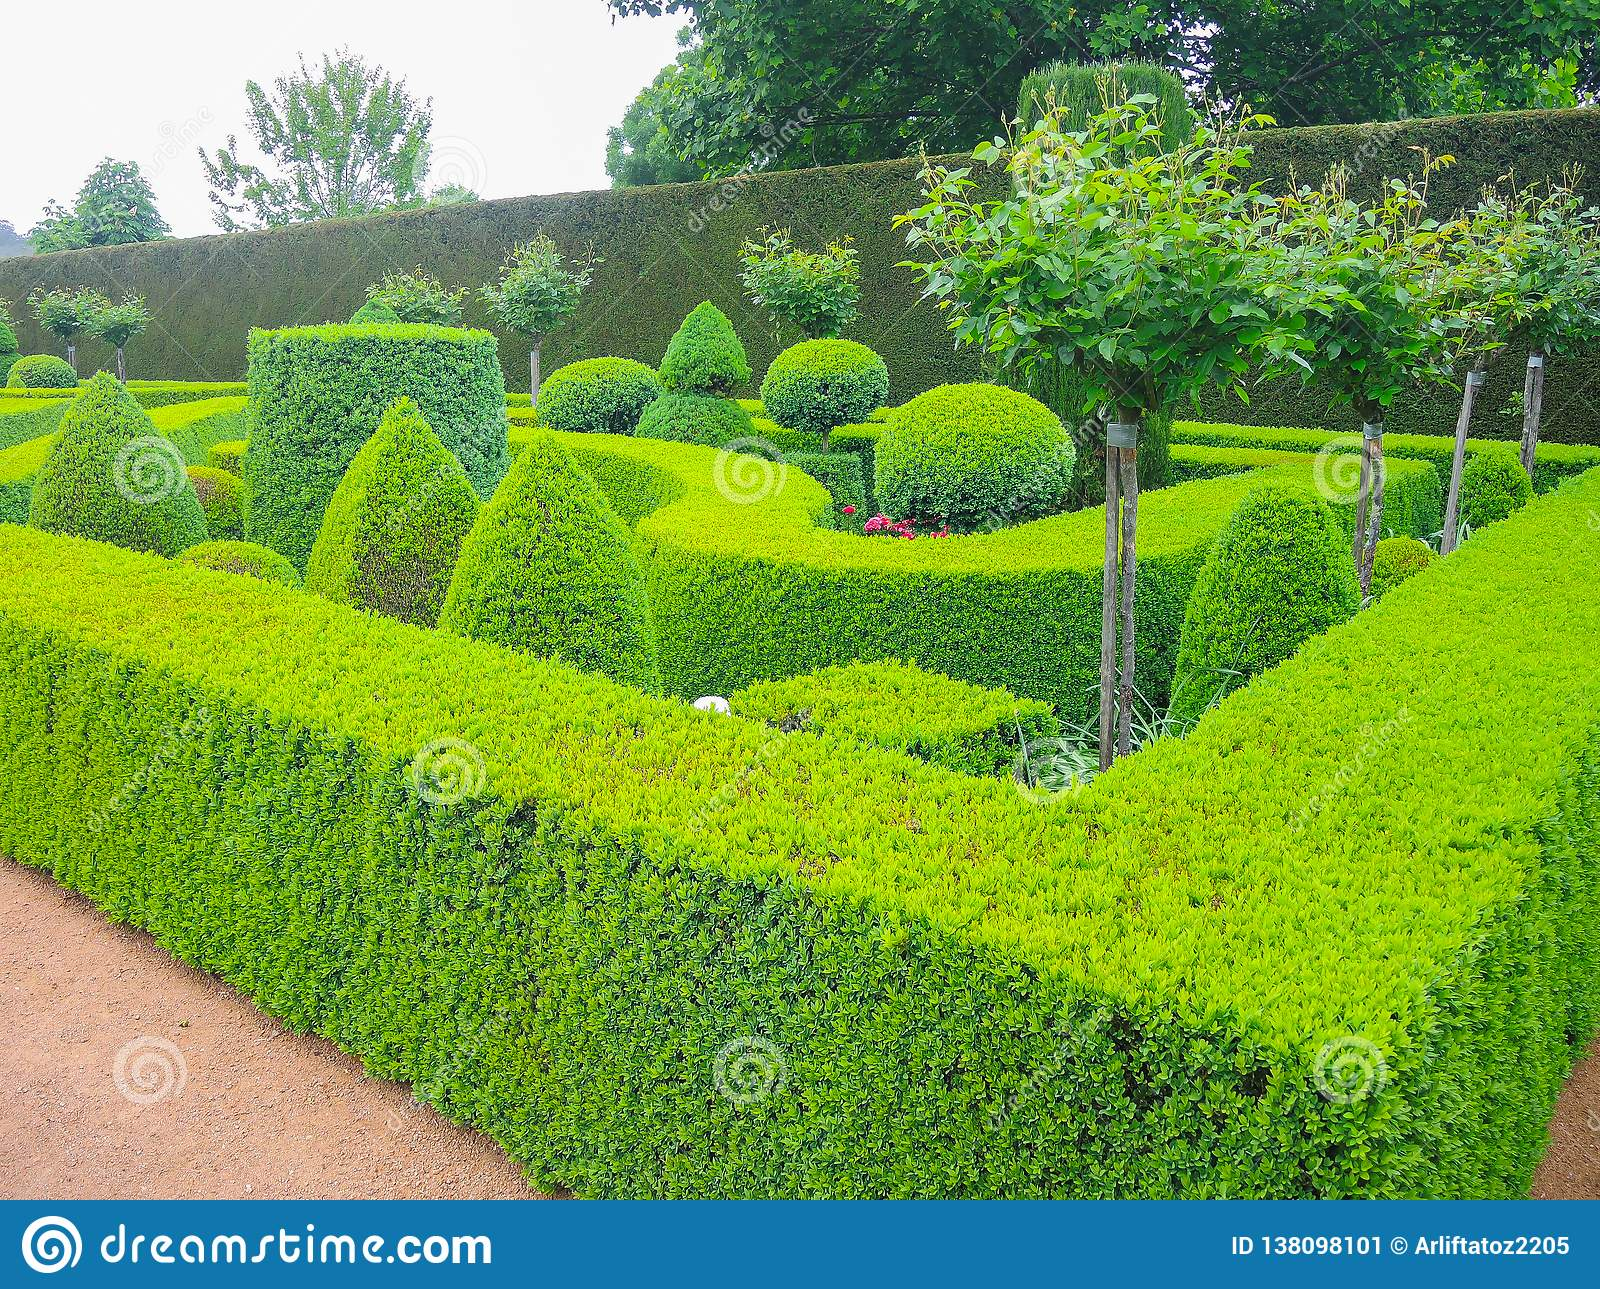 A Green Nice Garden With Hedges Cut Very Accurately Stock Image